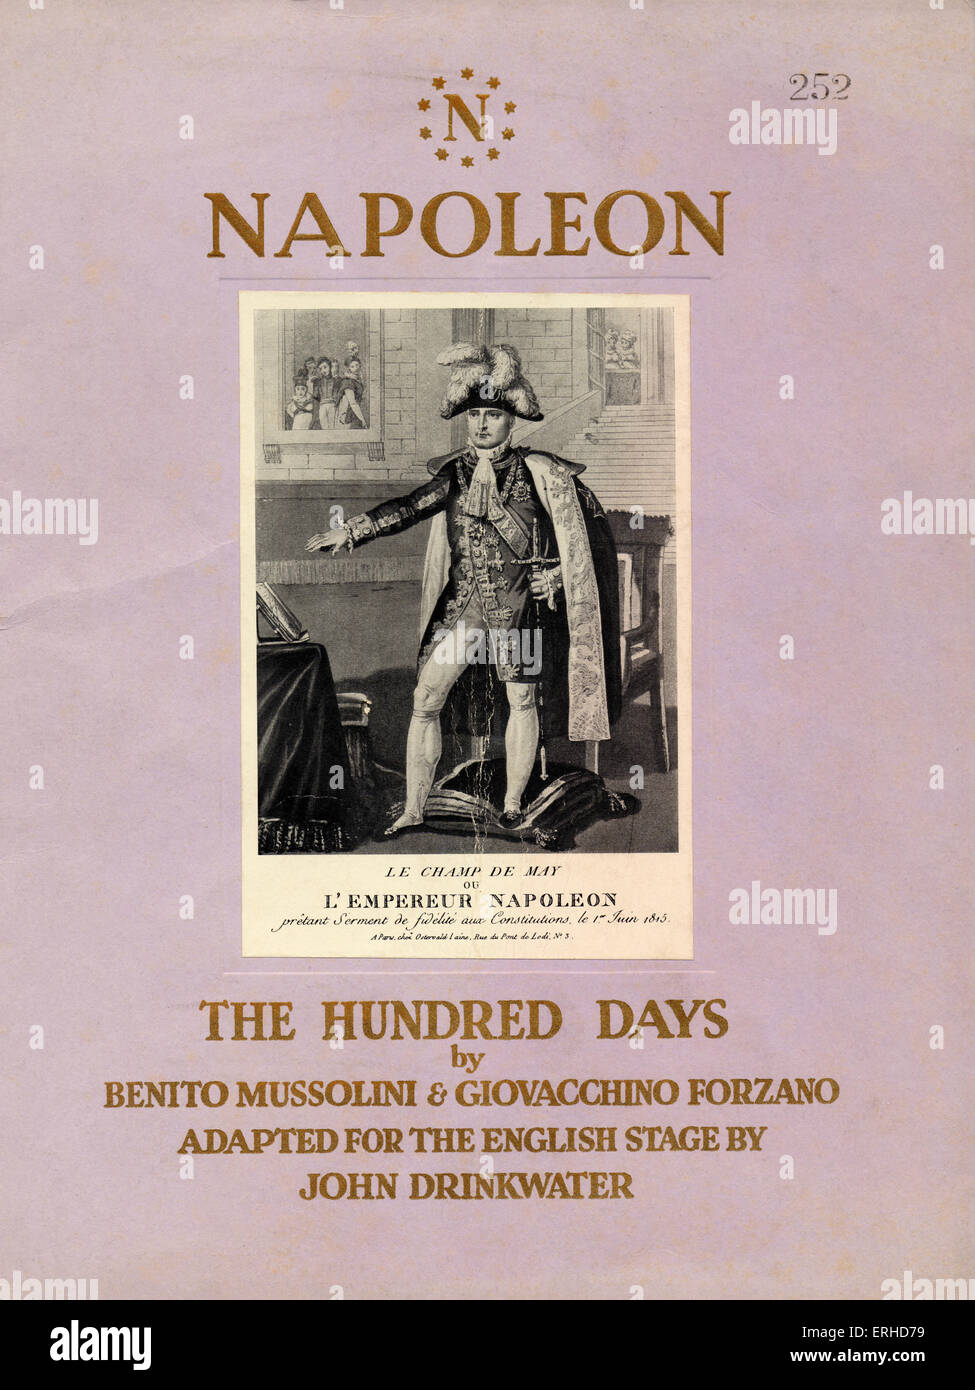 Napoleon - The Hundred Days - Play by Benito Mussolini & Giovacchino Forzano, adapted for the English stage - Stock Image